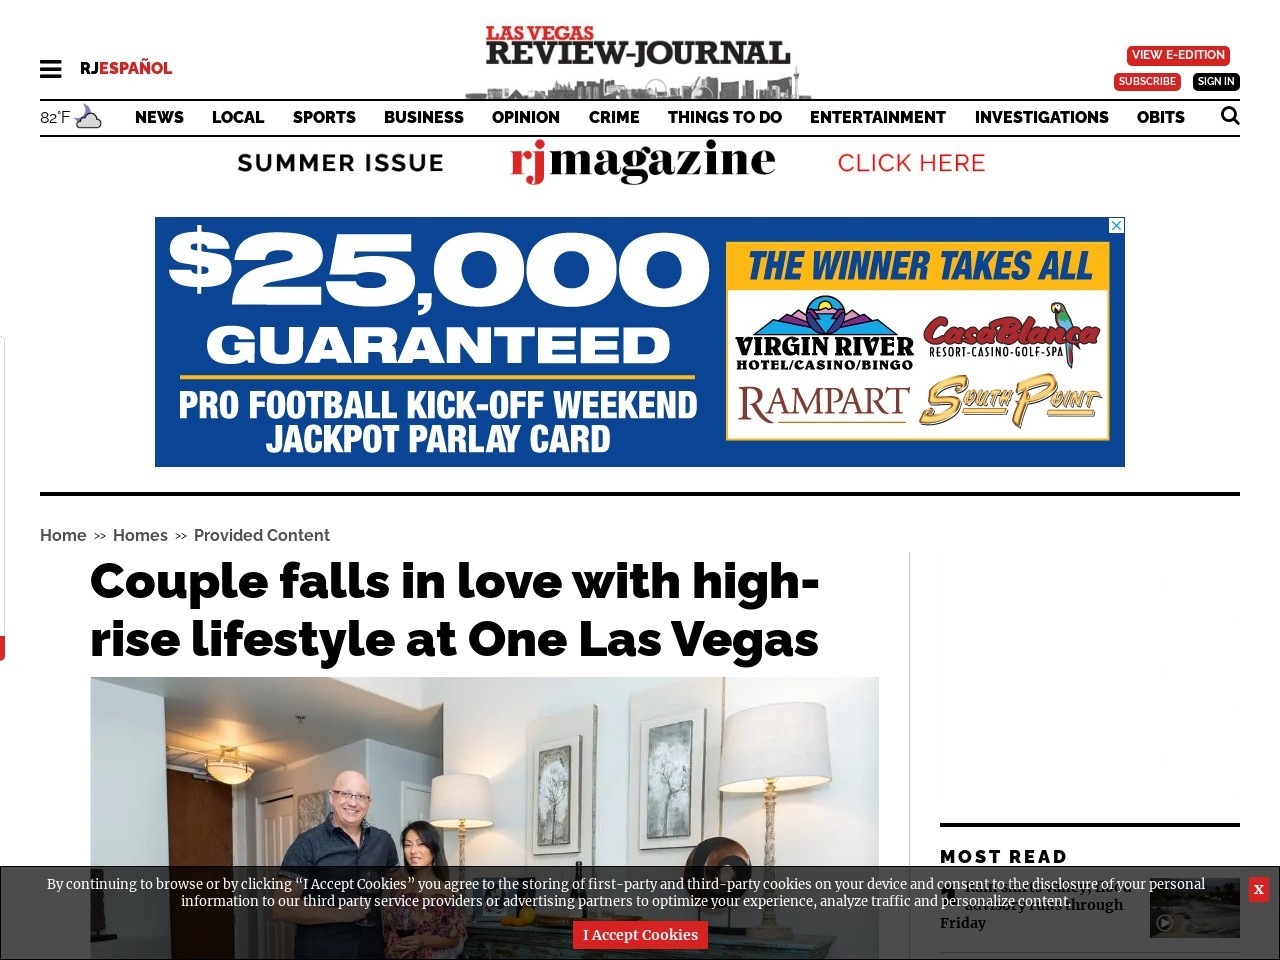 Couple falls in love with high-rise lifestyle at One Las Vegas